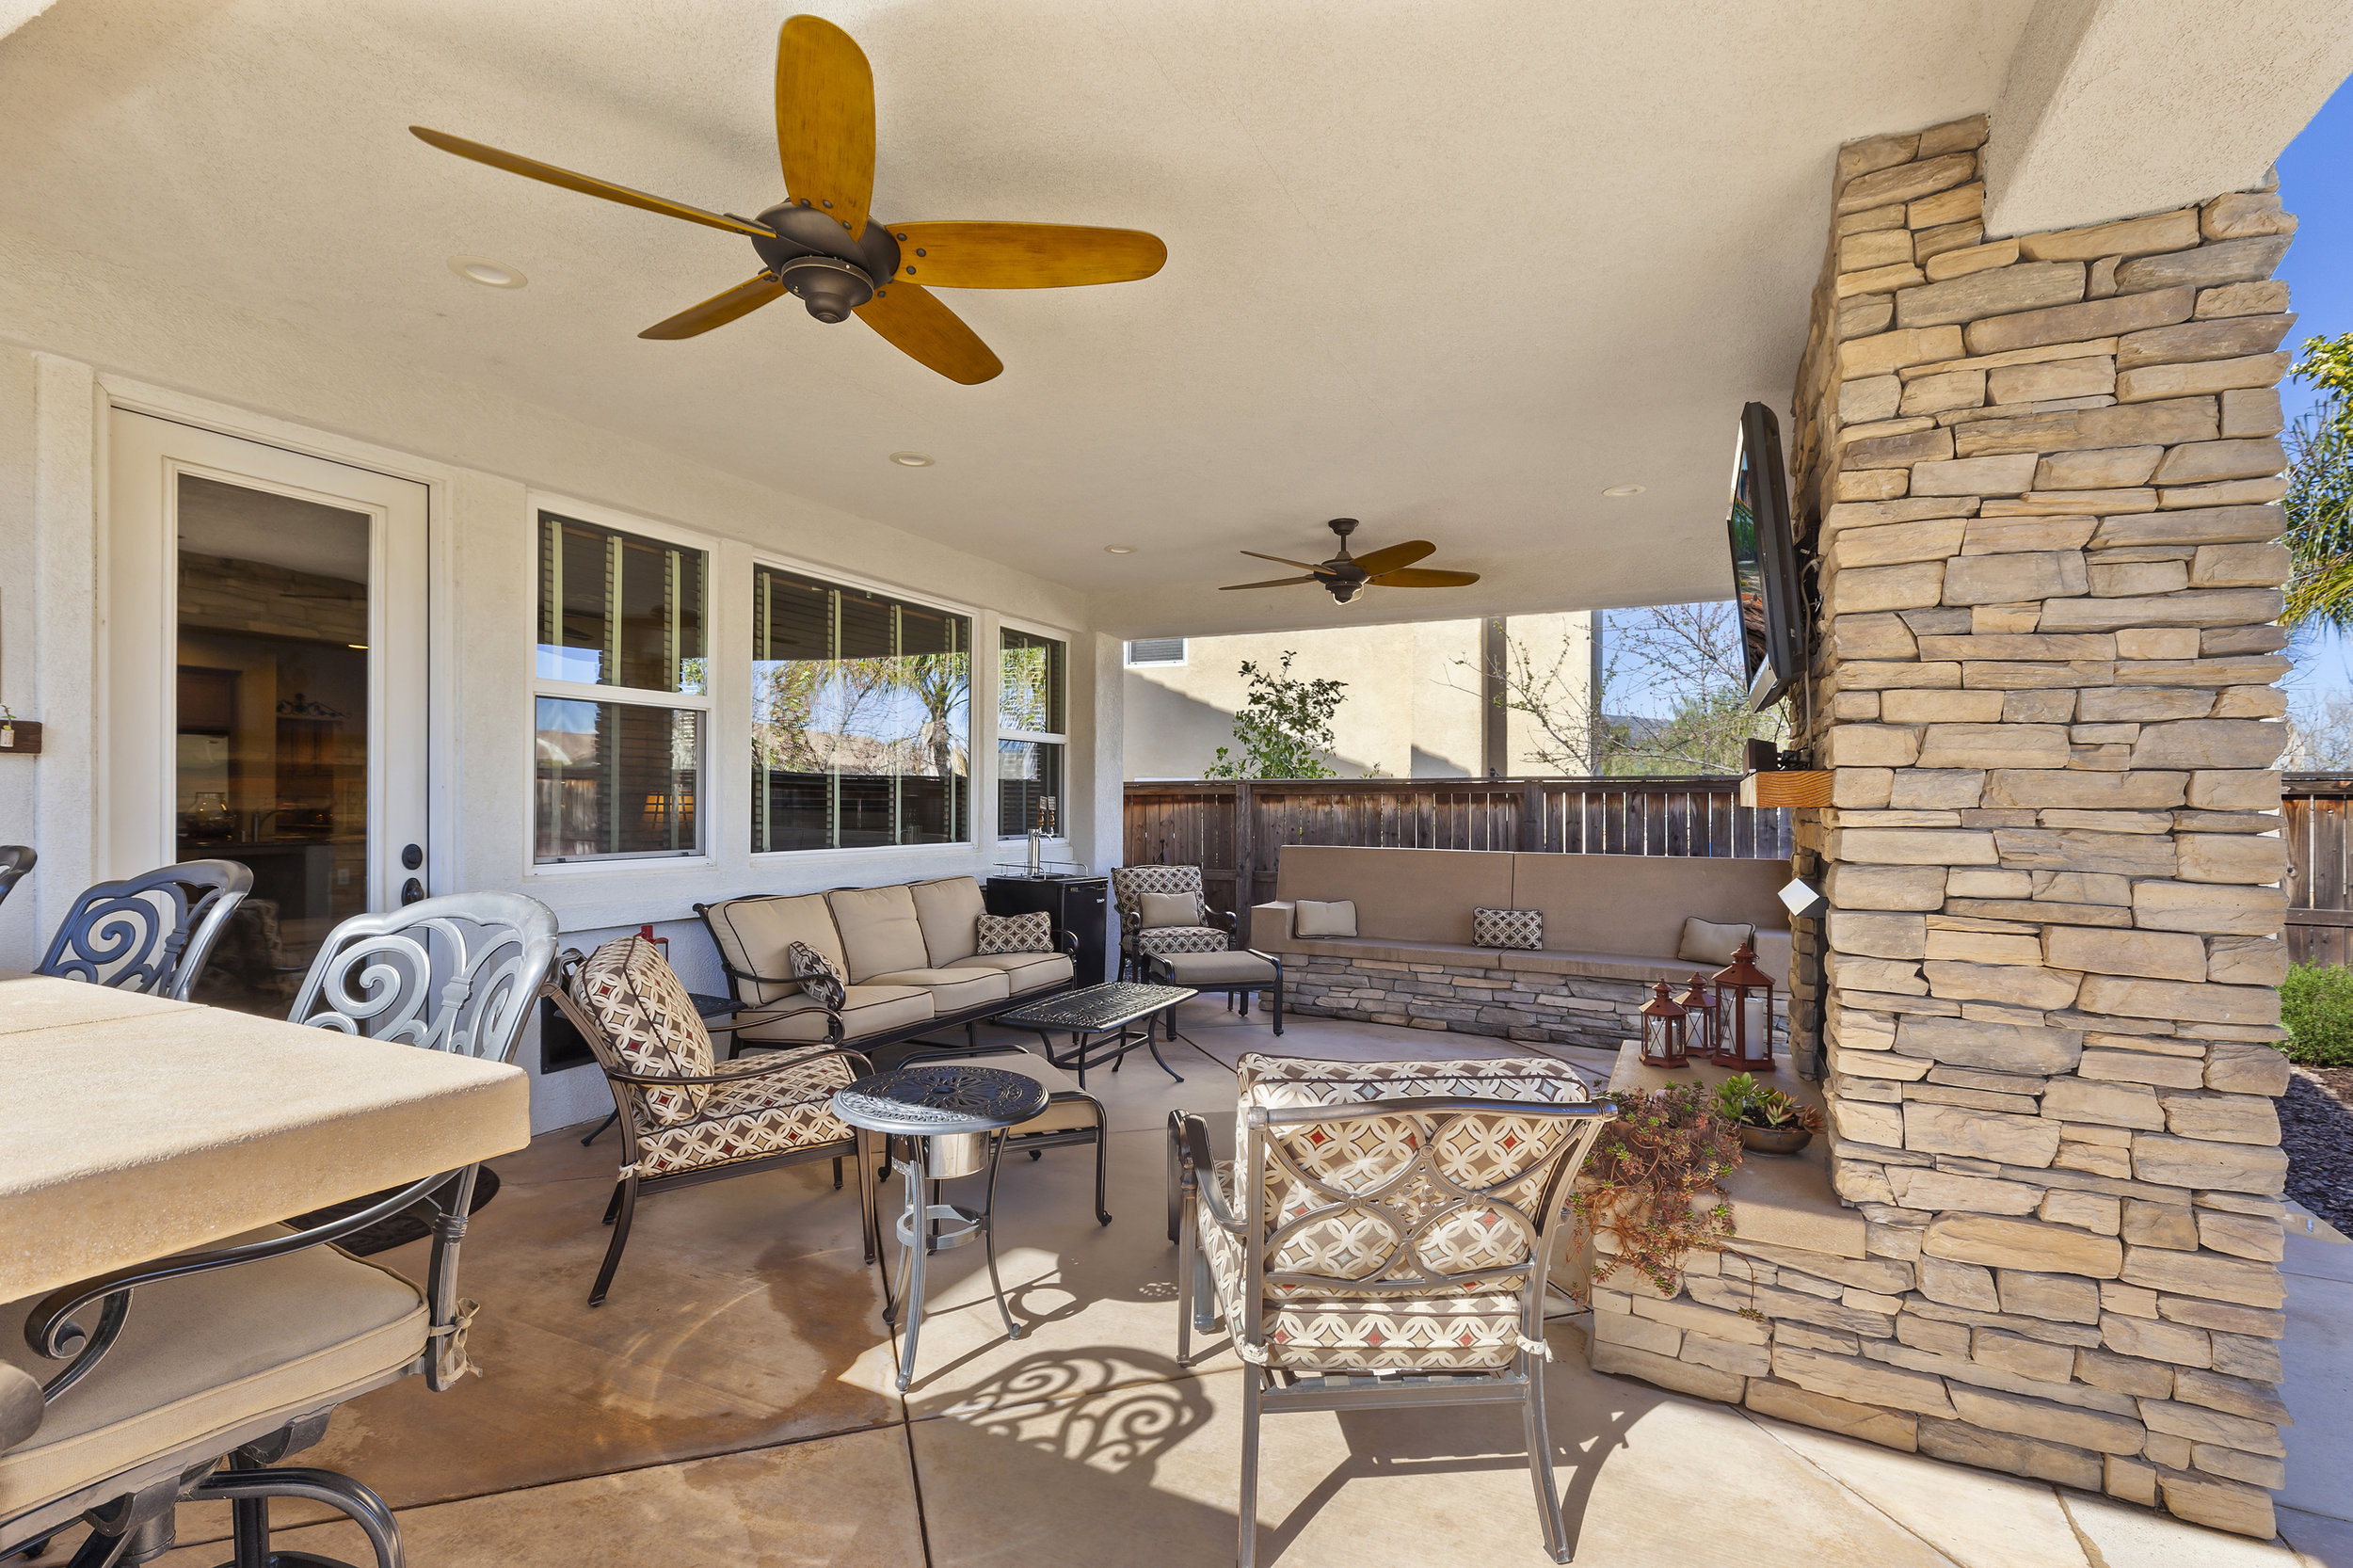 041_Covered Outdoor Room.jpg